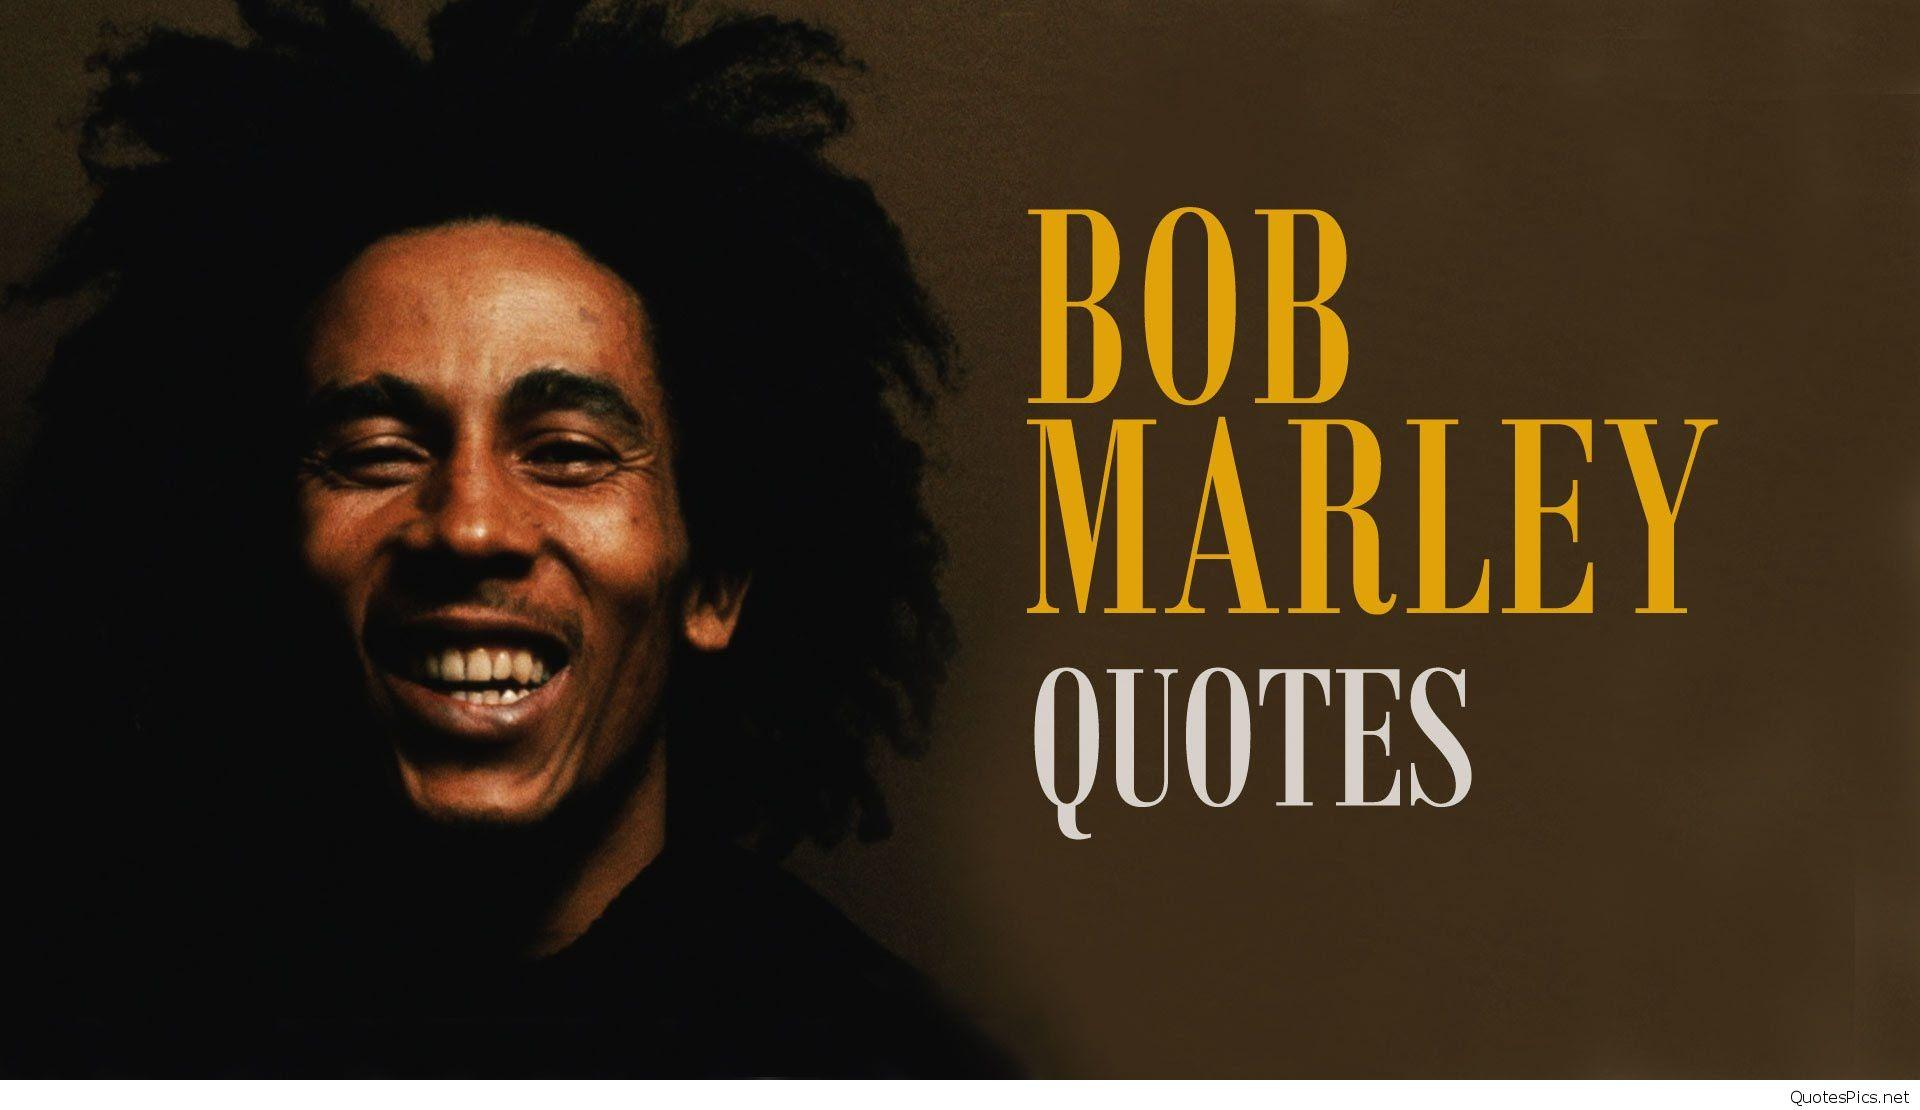 Bob Marley Wallpapers With Quotes Wallpaper Cave